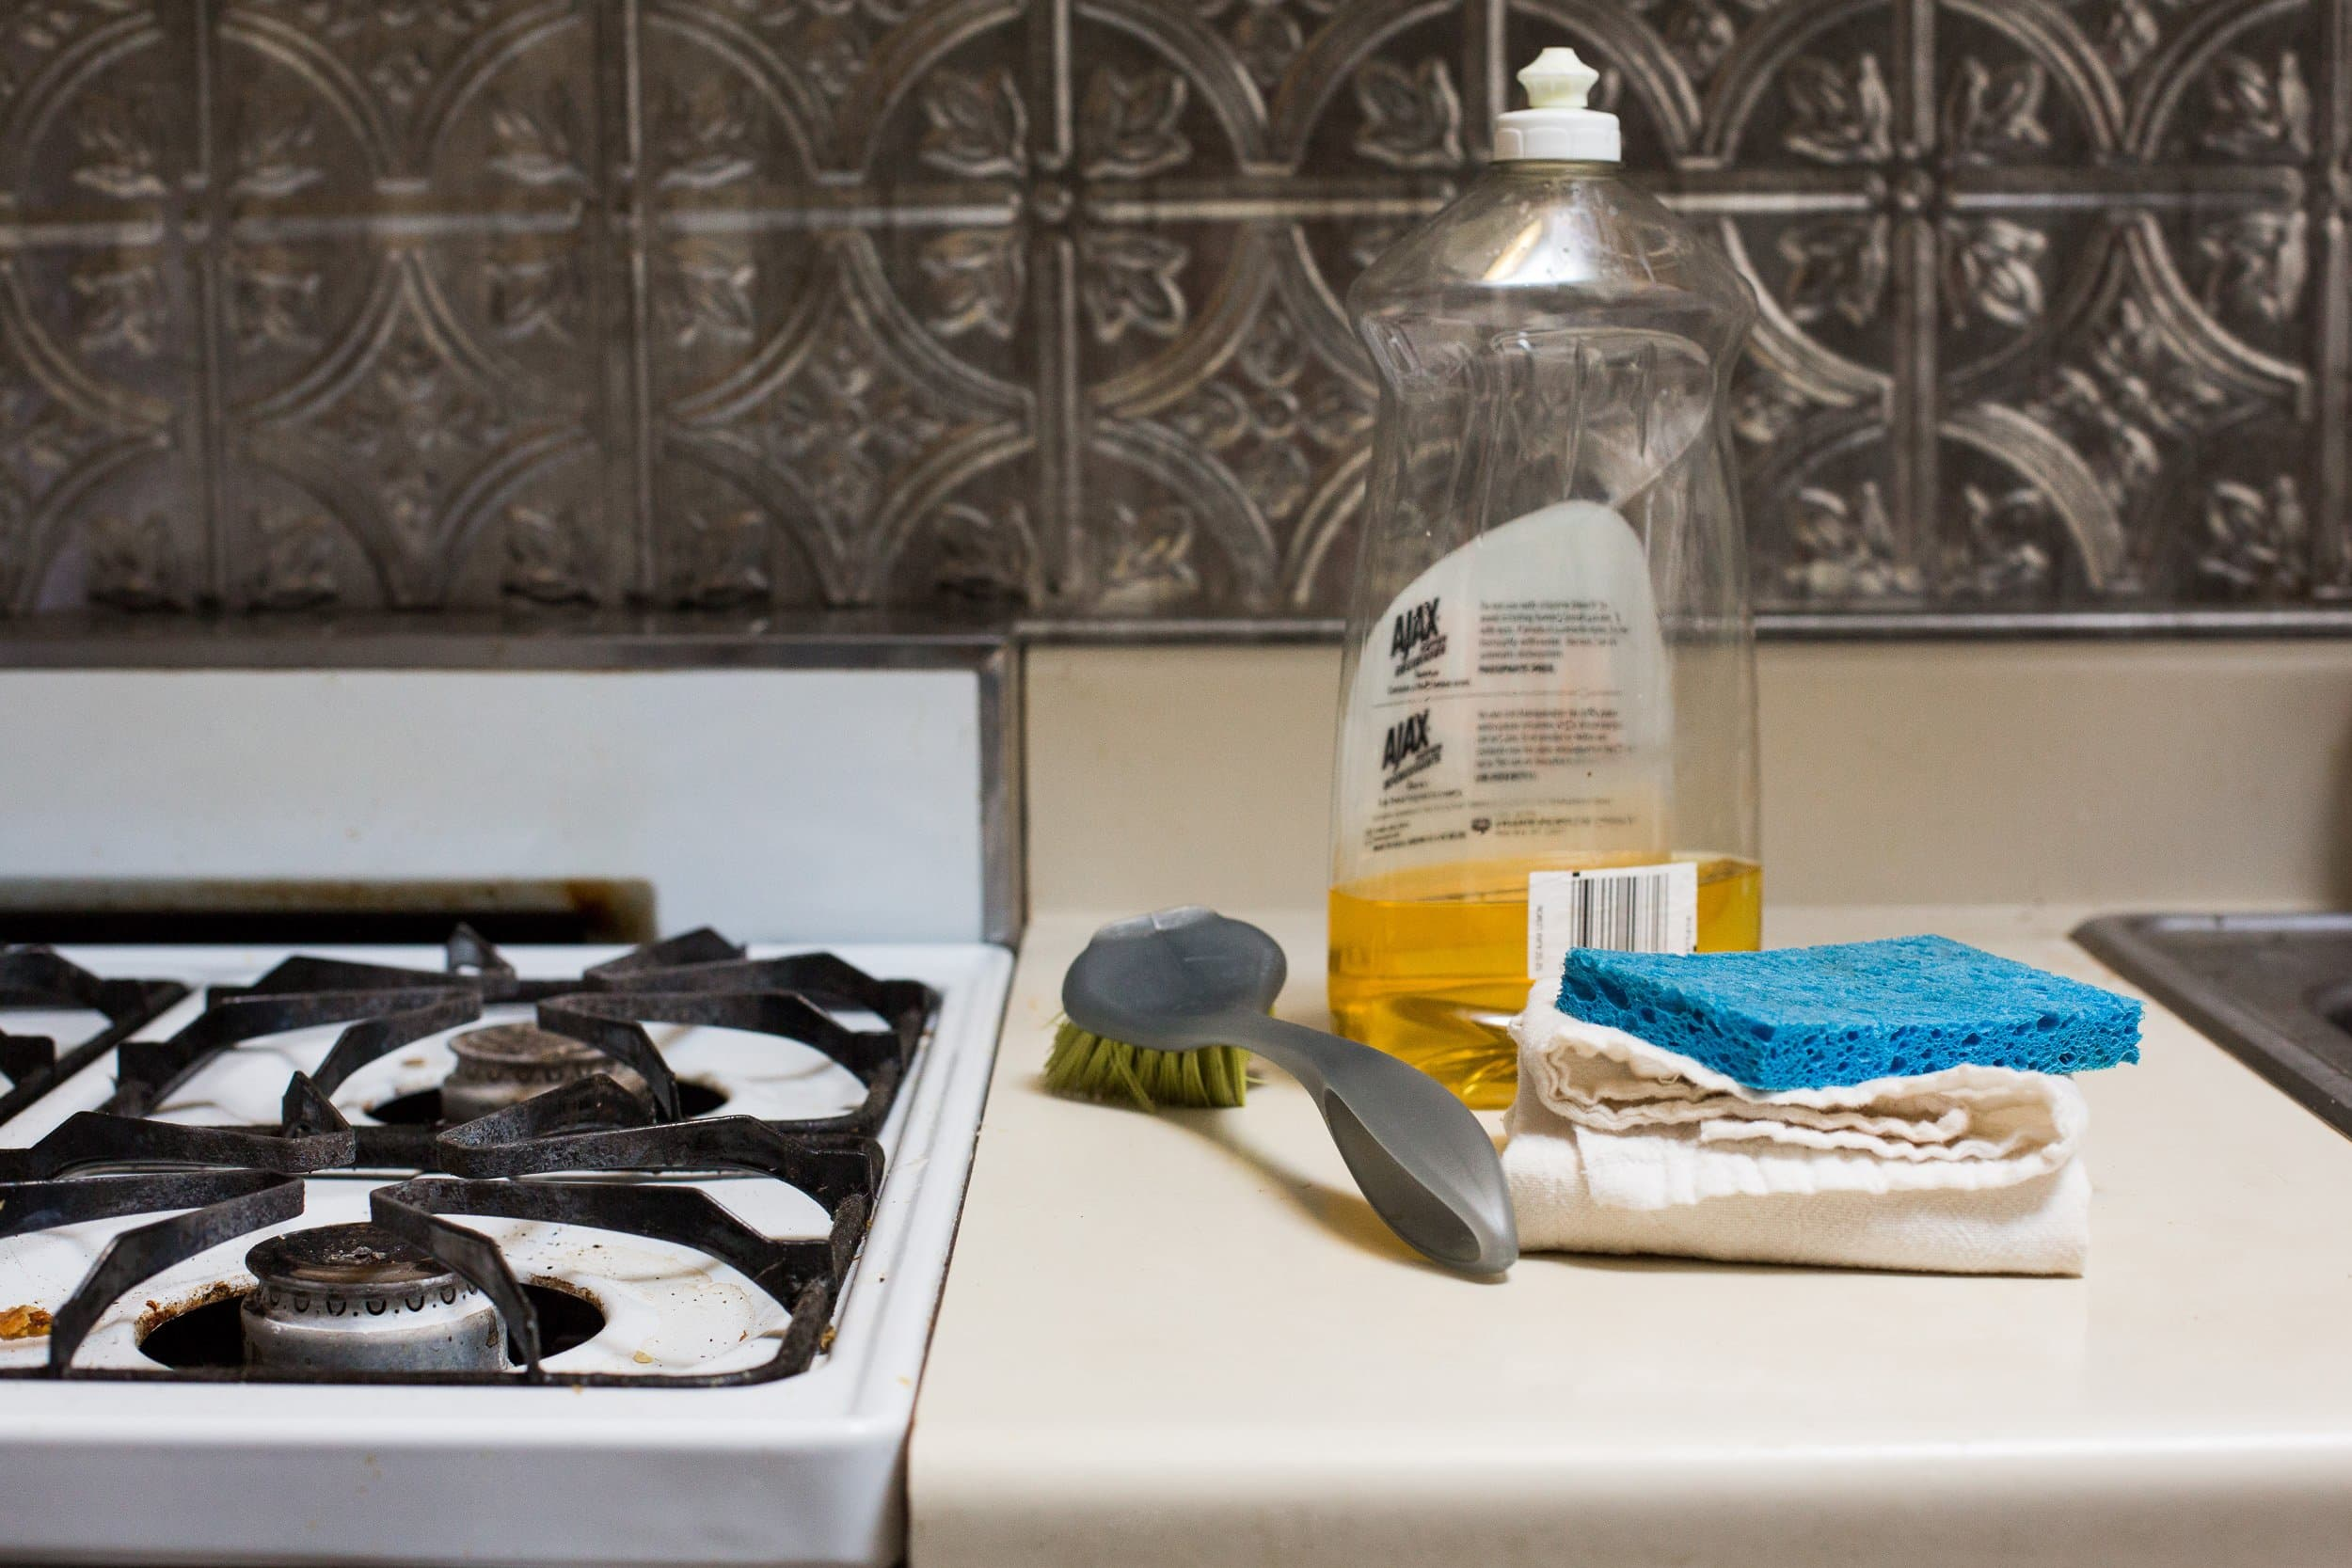 How To Clean a Greasy Gas Stovetop with Just Soap and Water: gallery image 1